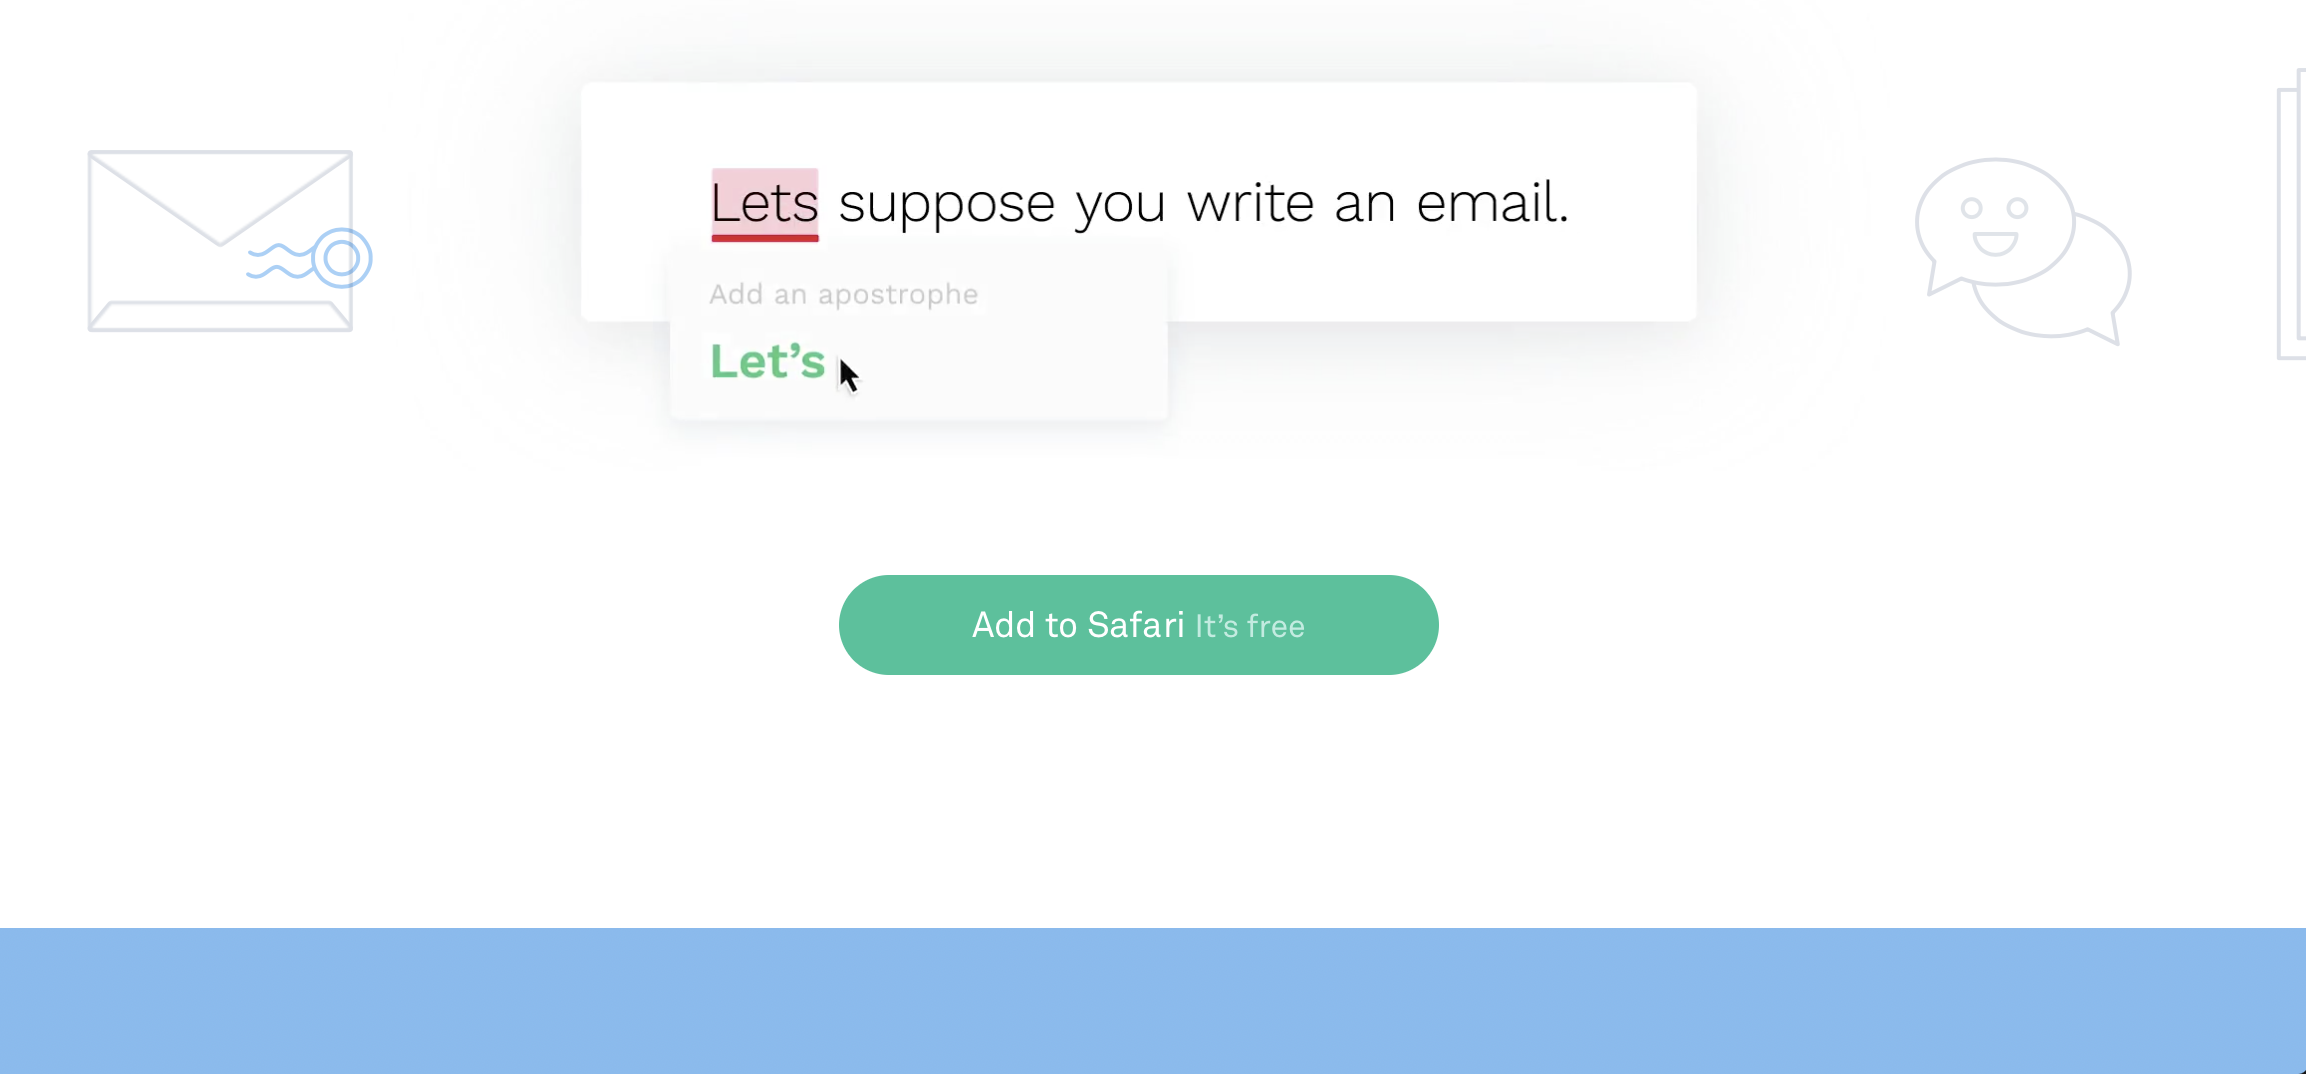 Grammarly Screencap showing off editing capabilities